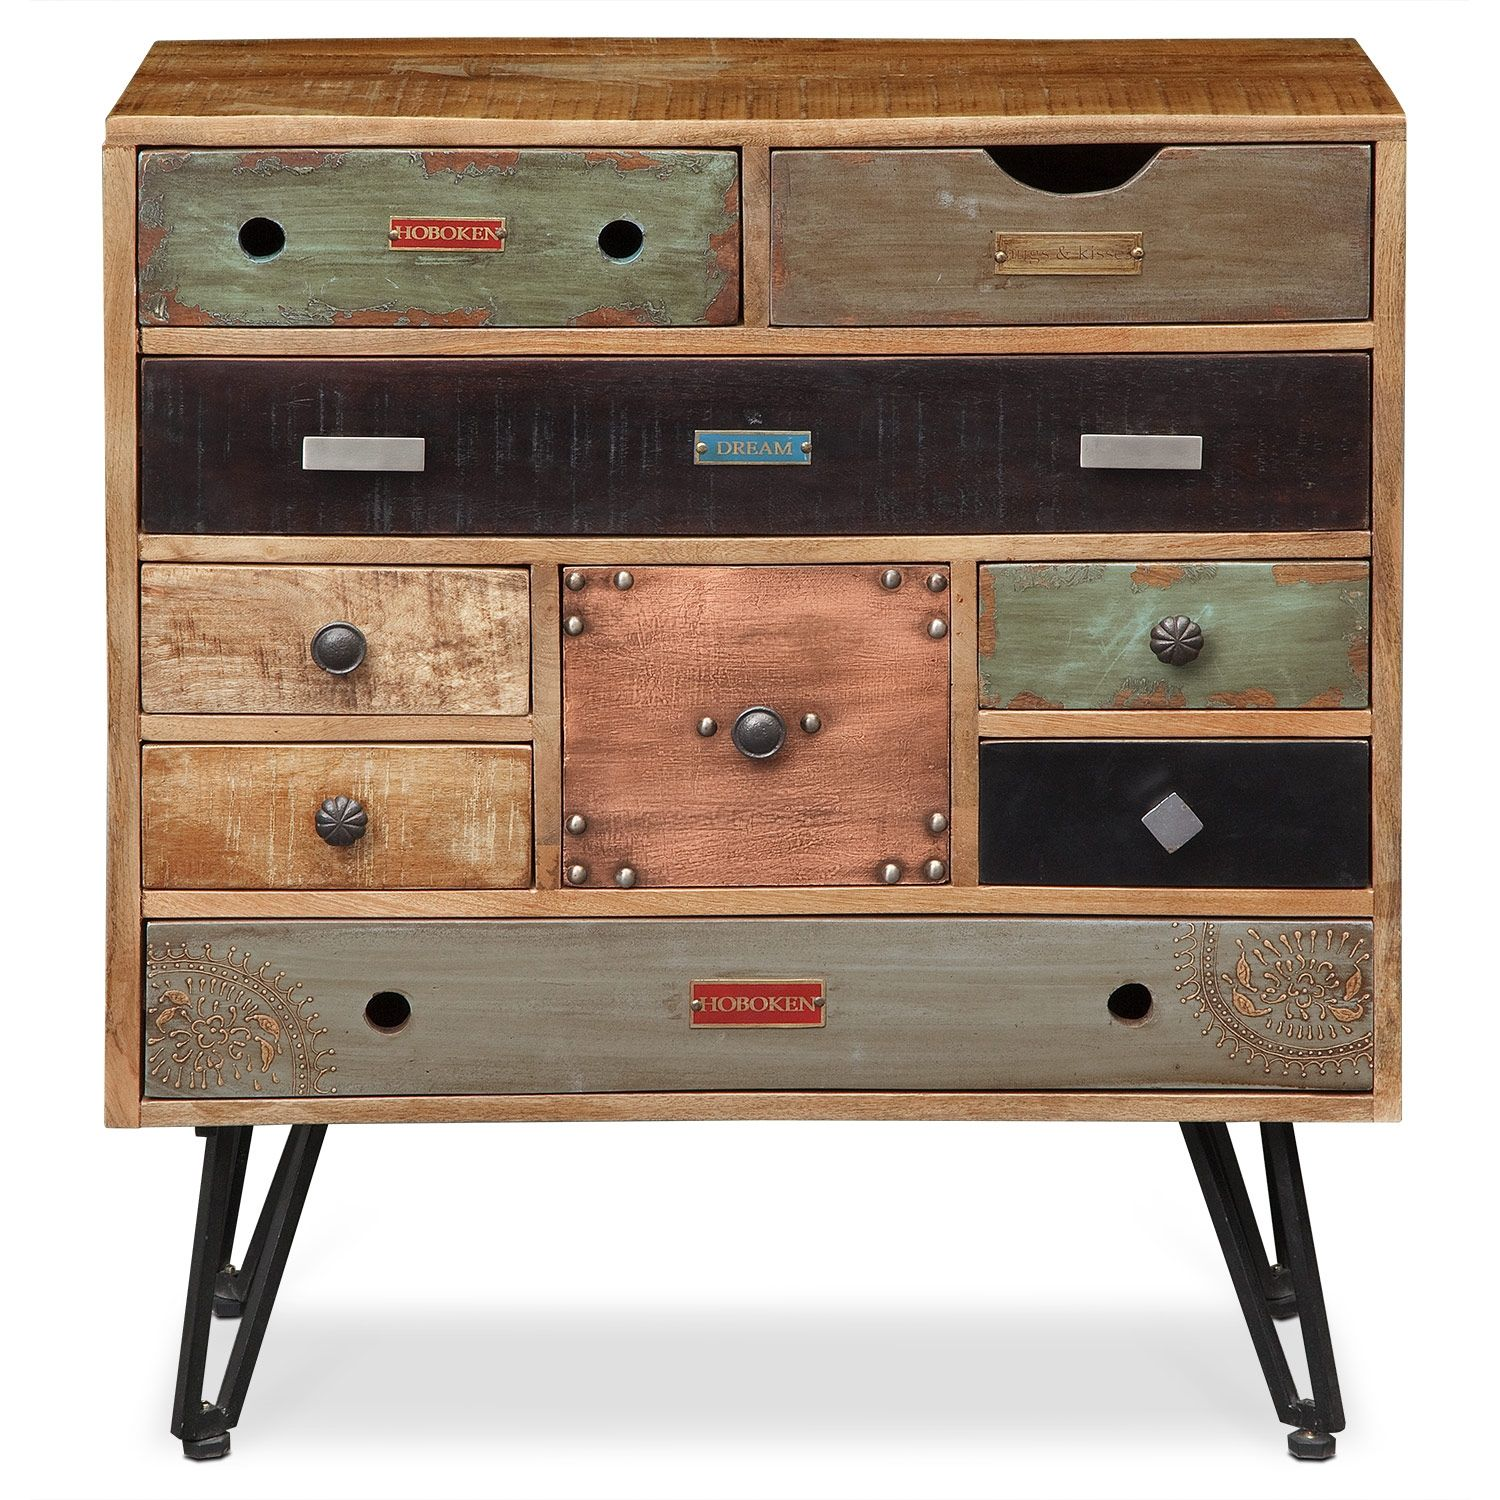 Find My Furniture: You Don't Have To Go To The Flea Market To Find Your